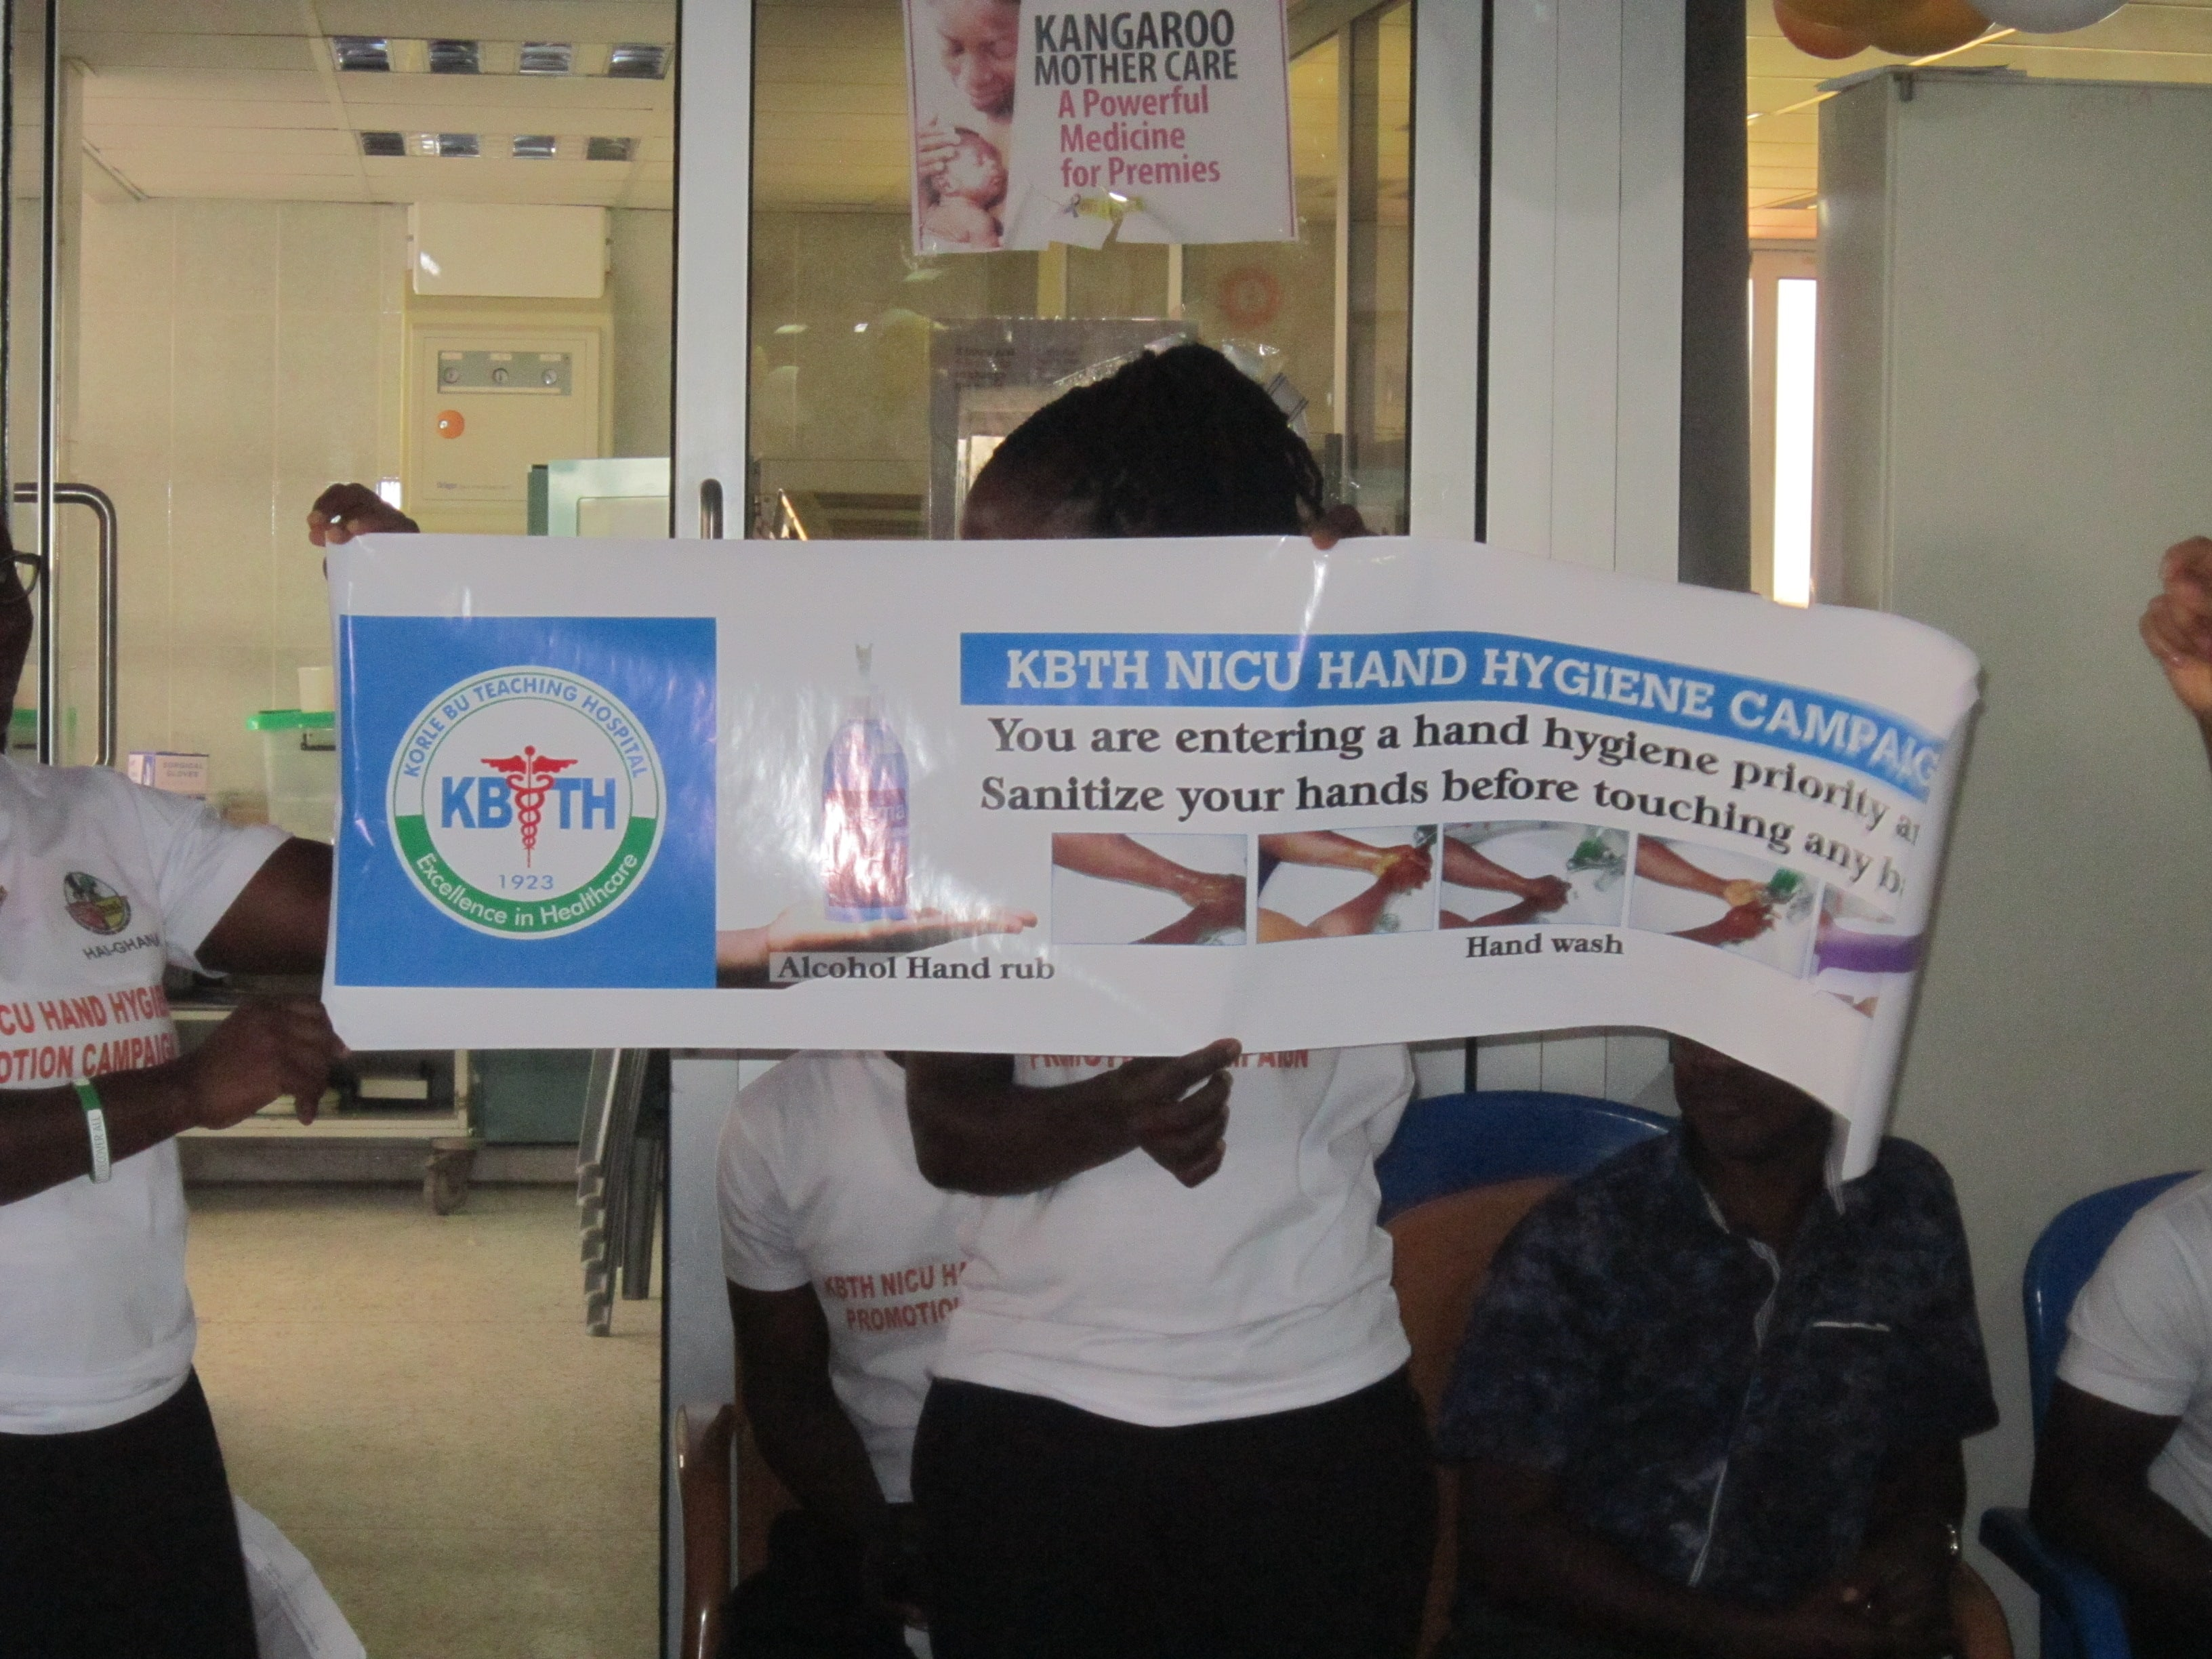 The unveiling of a hygiene banner in a neonatal ward in Korle-Bu hospital.